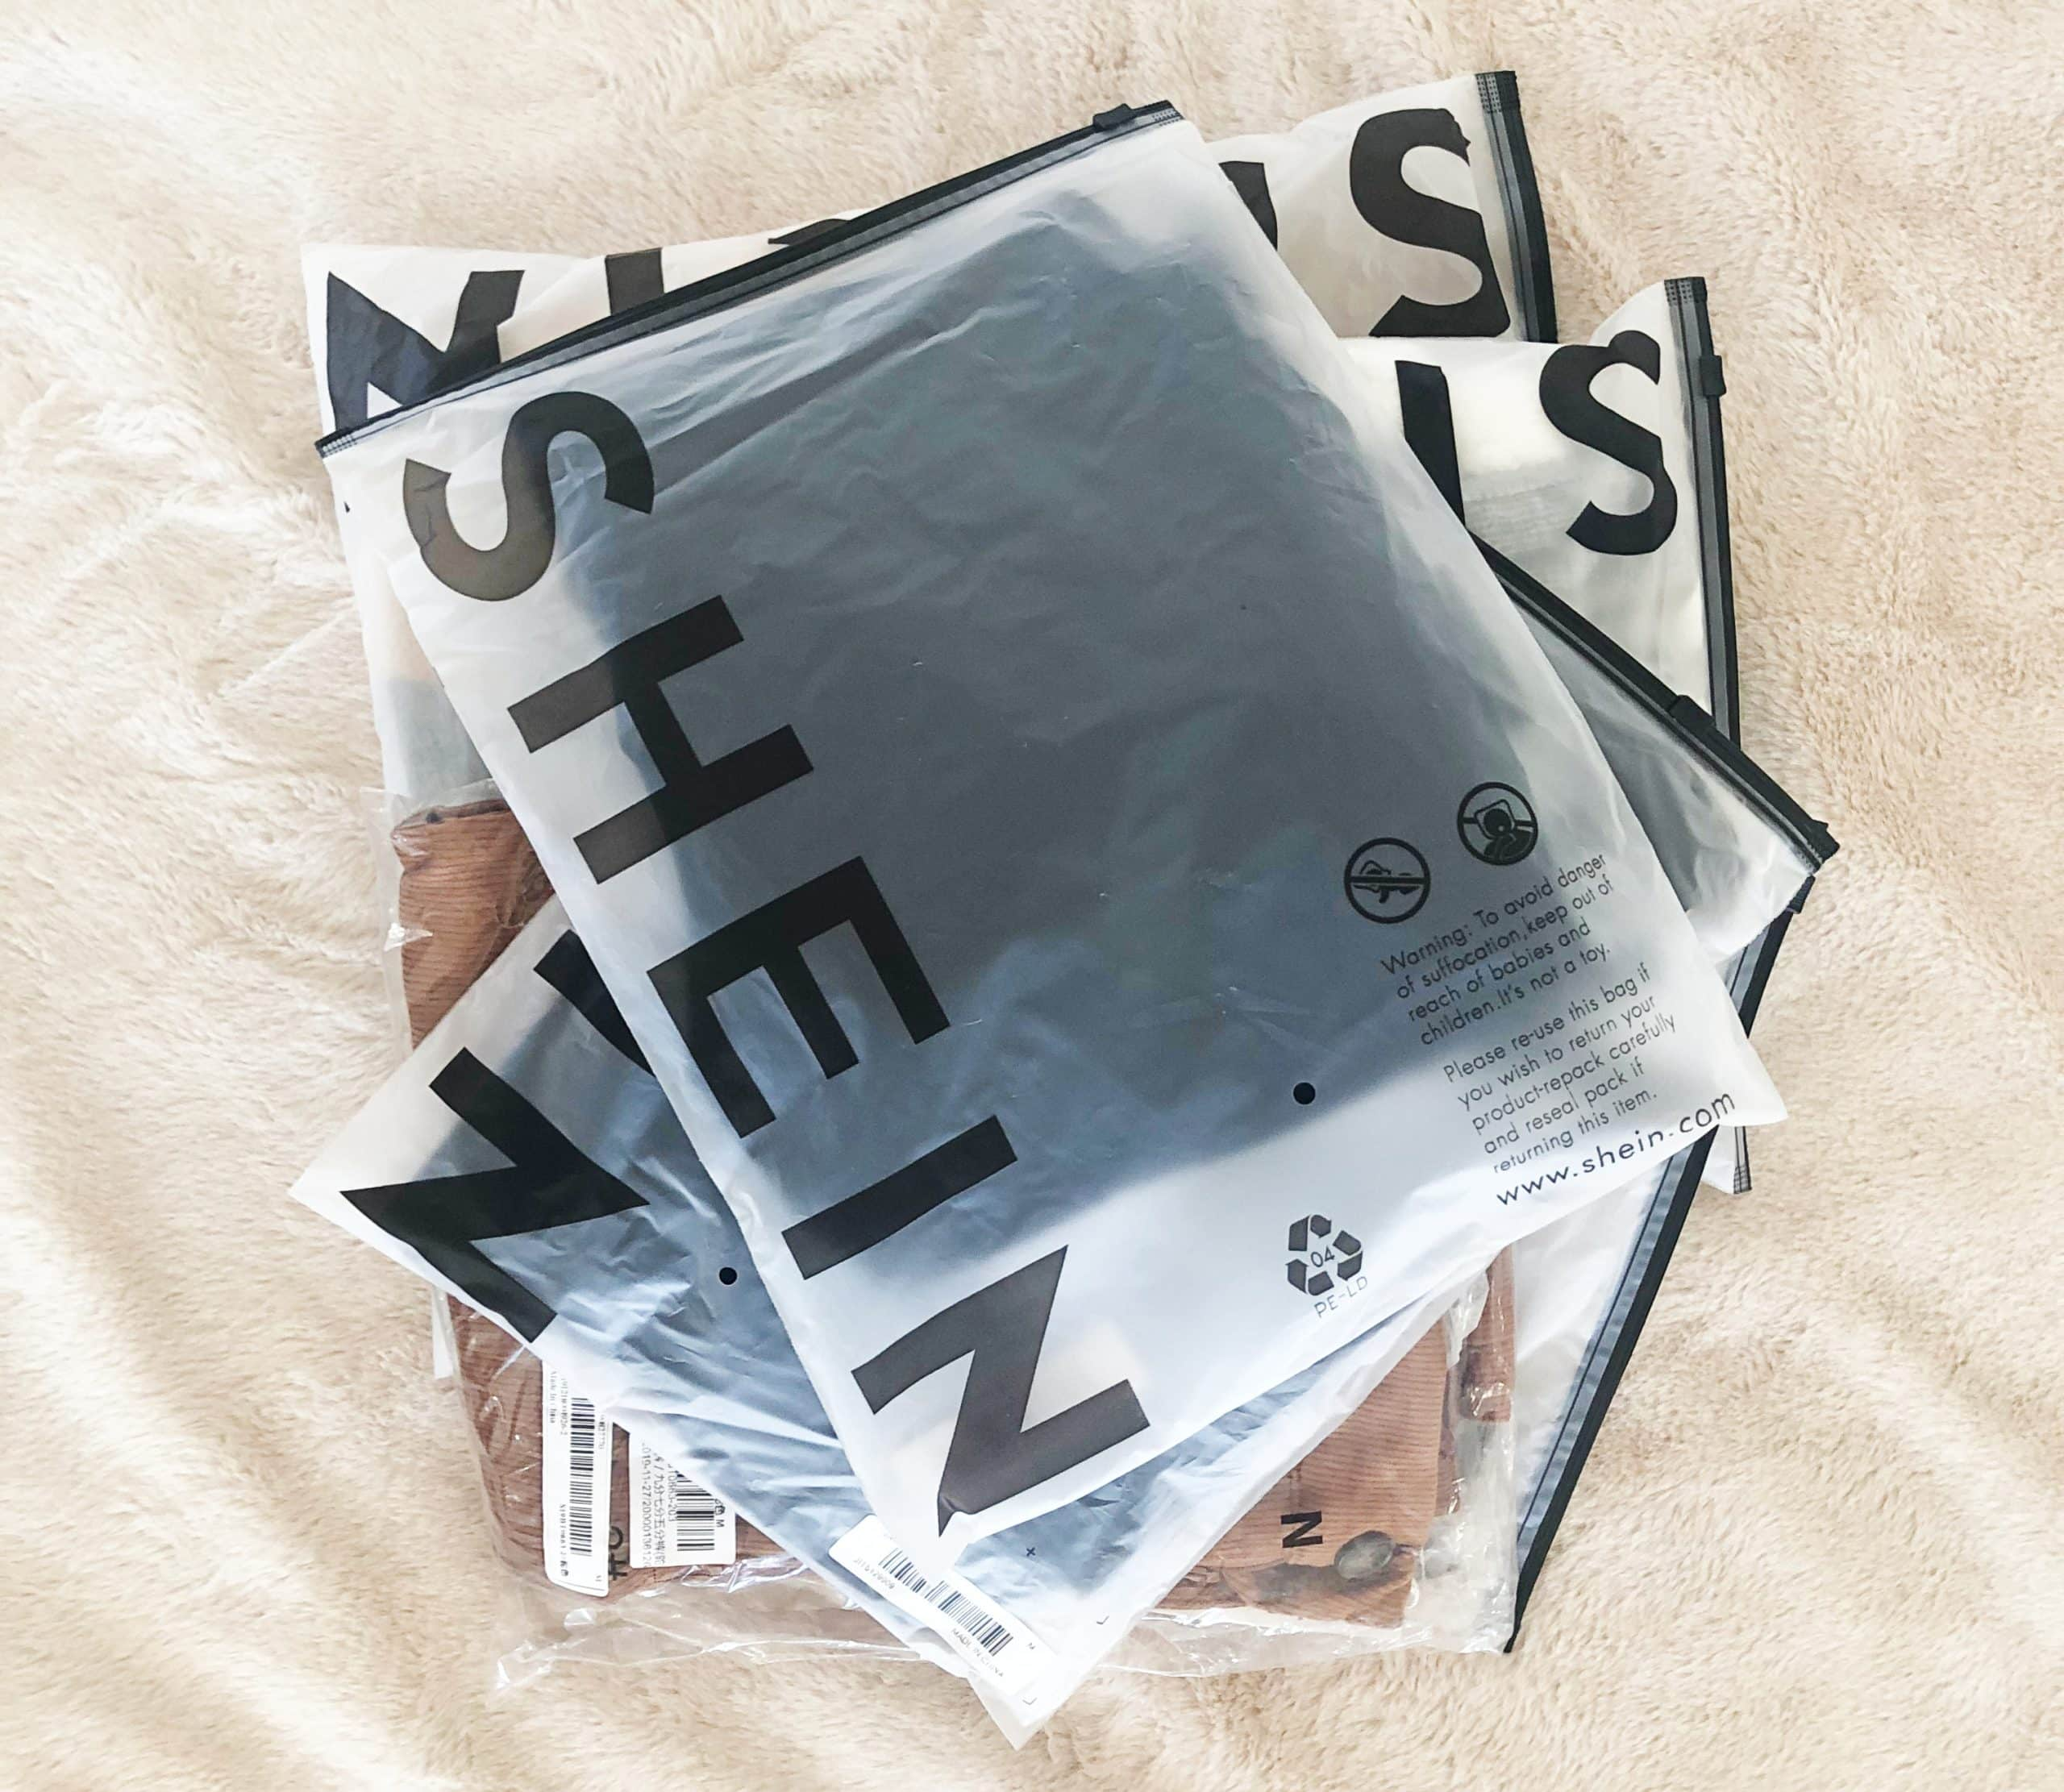 Honest SheIn Reviews in 2021 (After Ordering $400+)